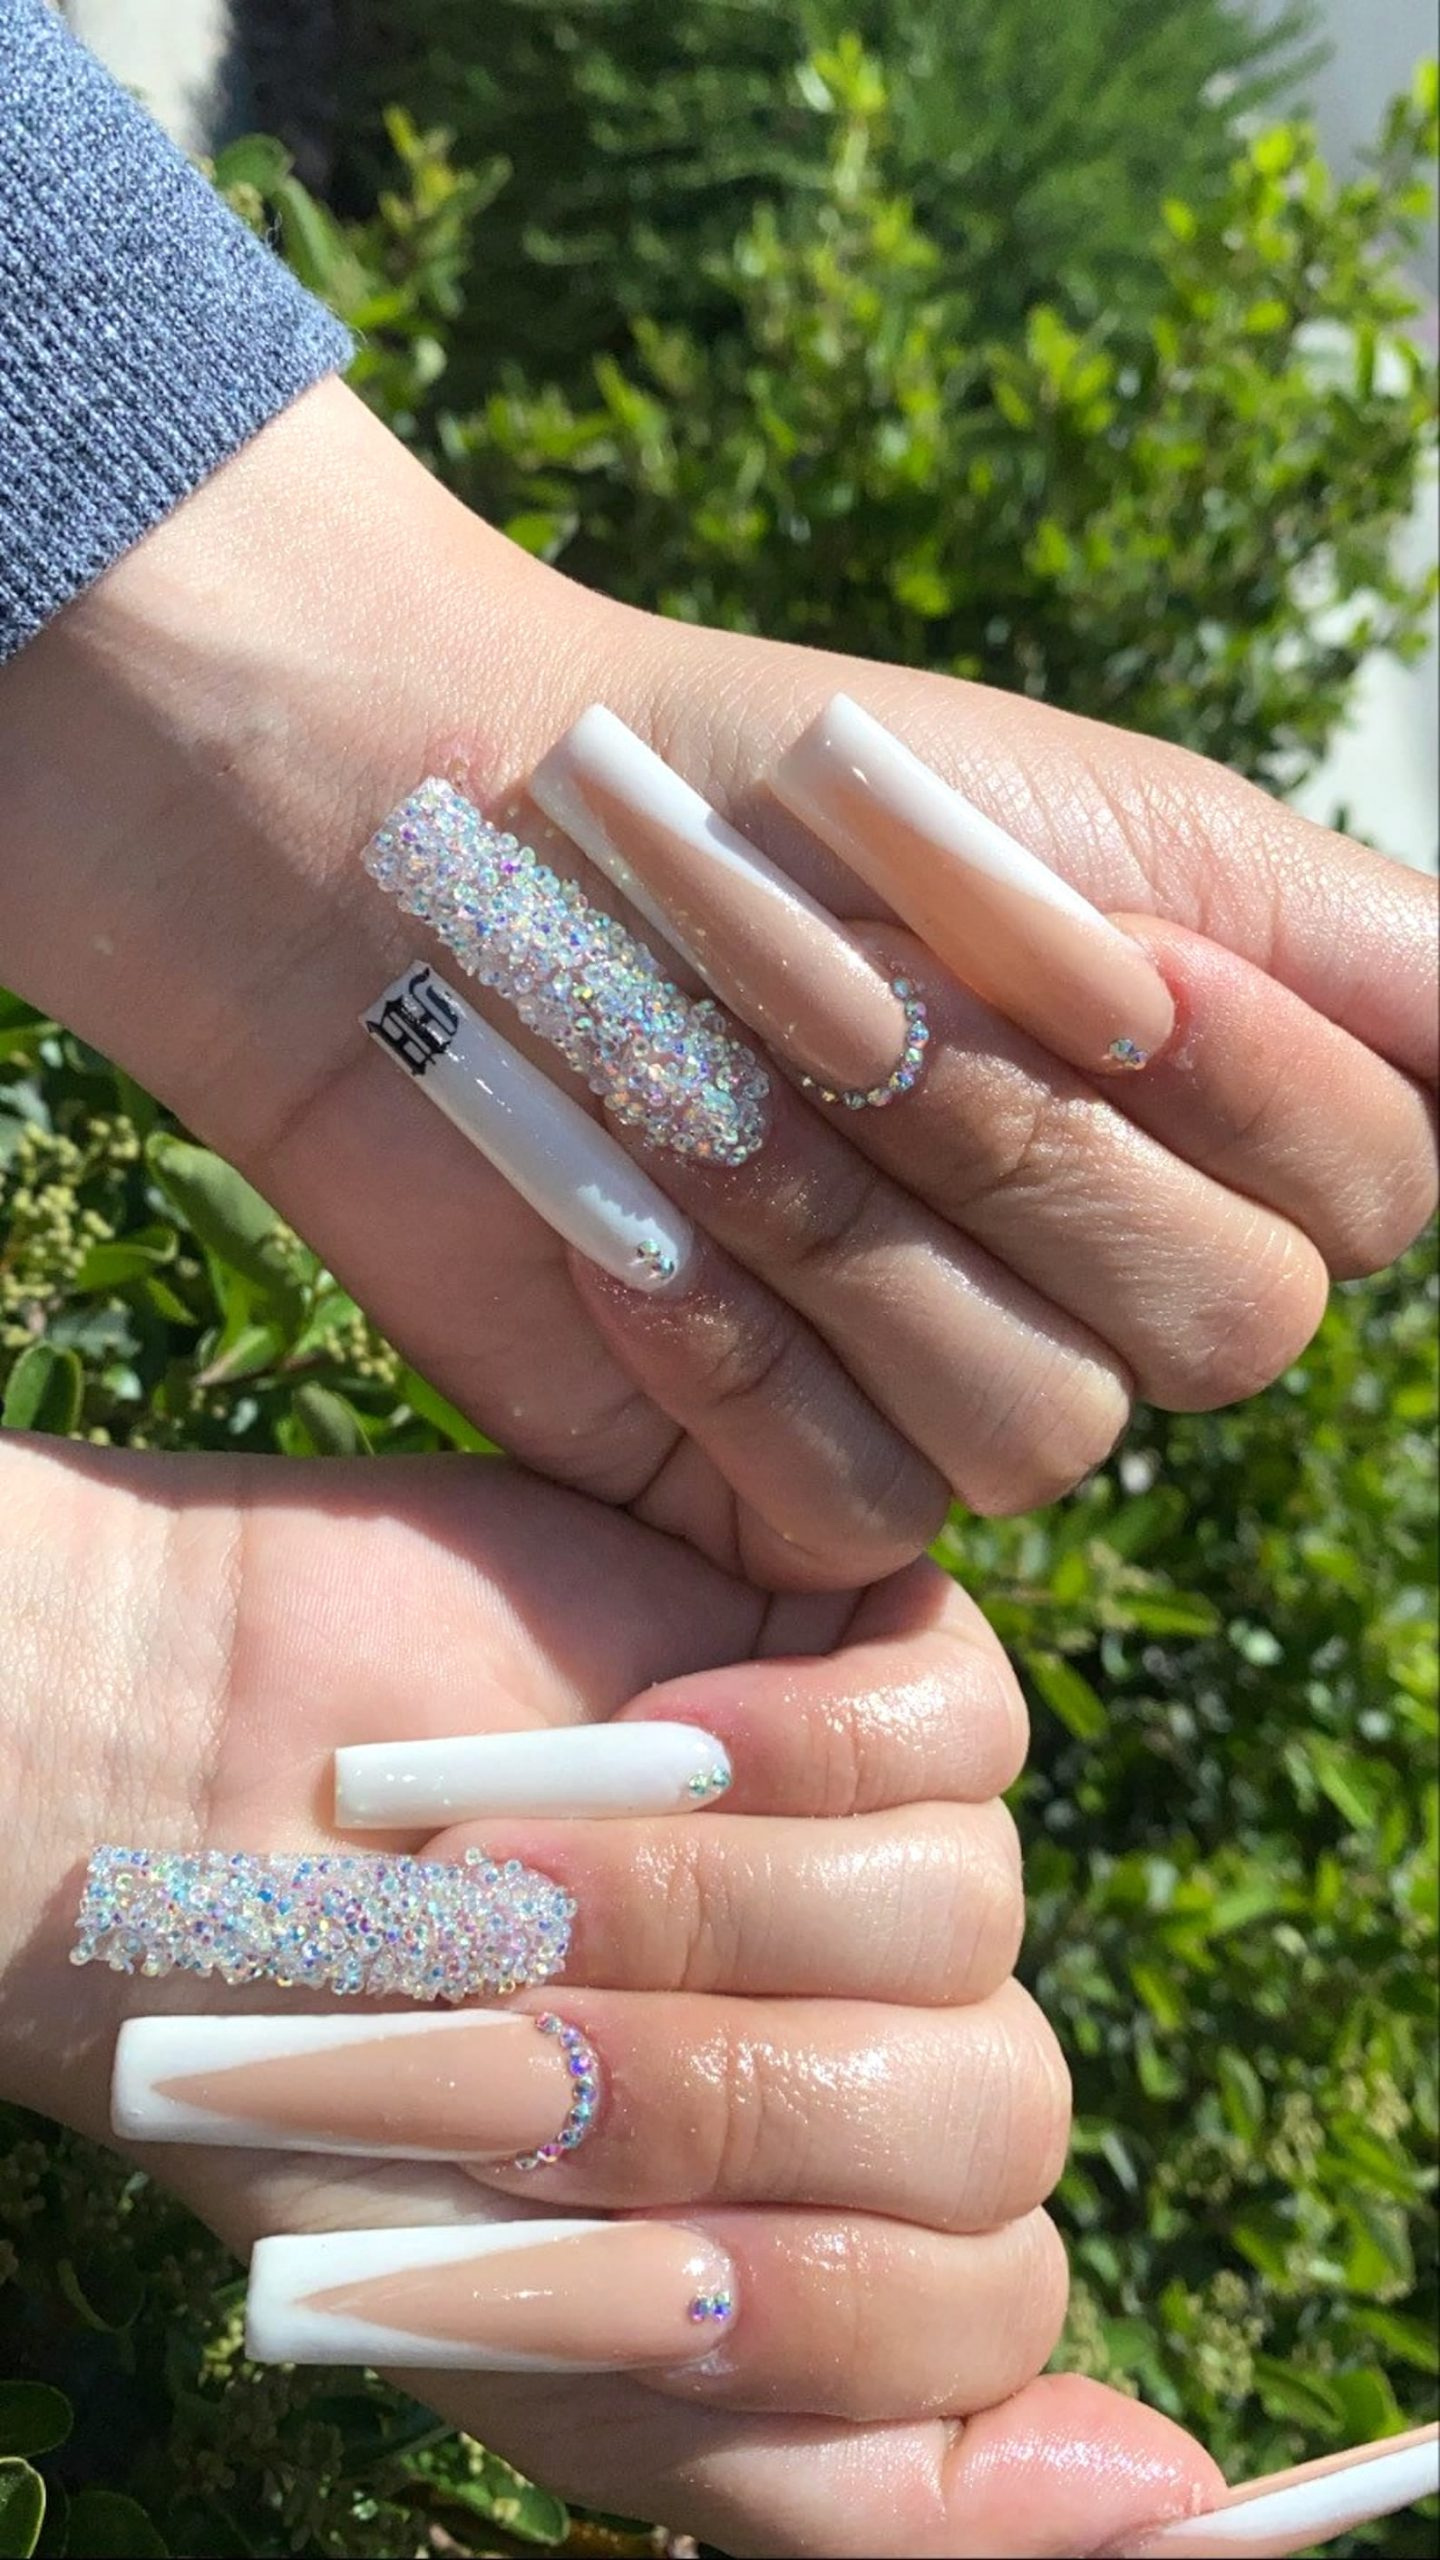 Long icy French tip nails with rhinestones in coffin shape